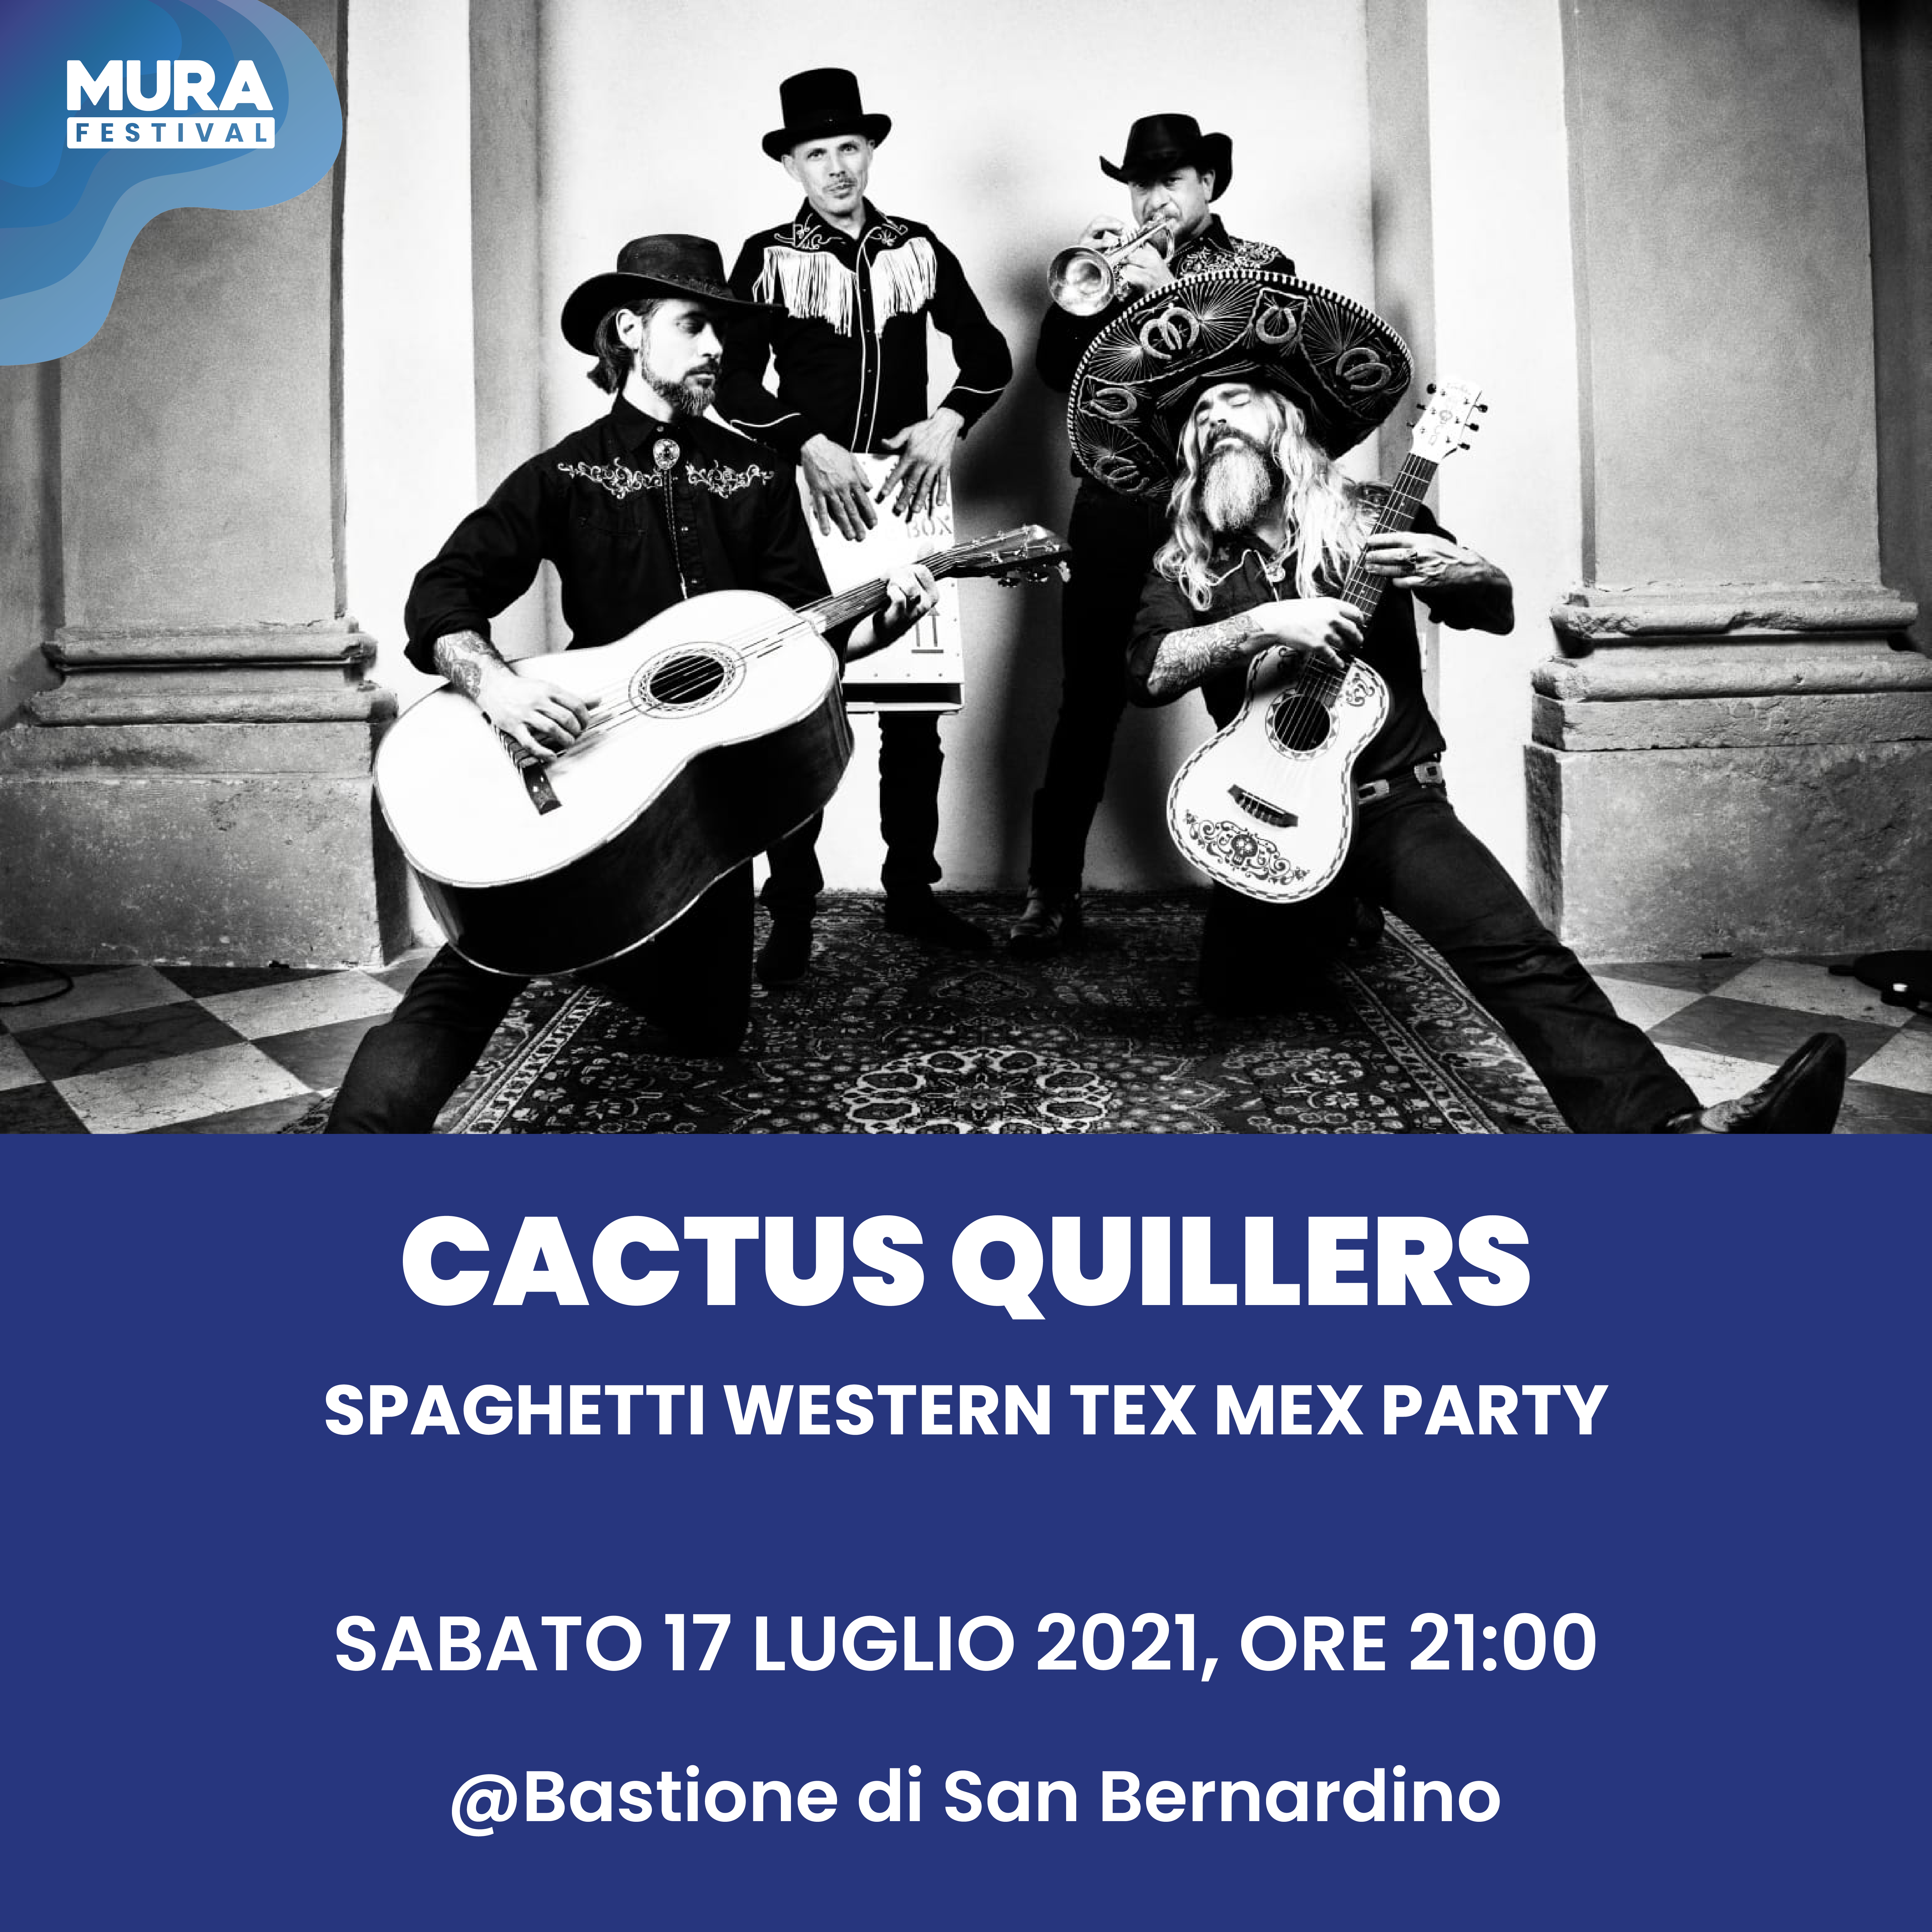 Cactus quillers - Spaghetti western tex mex party